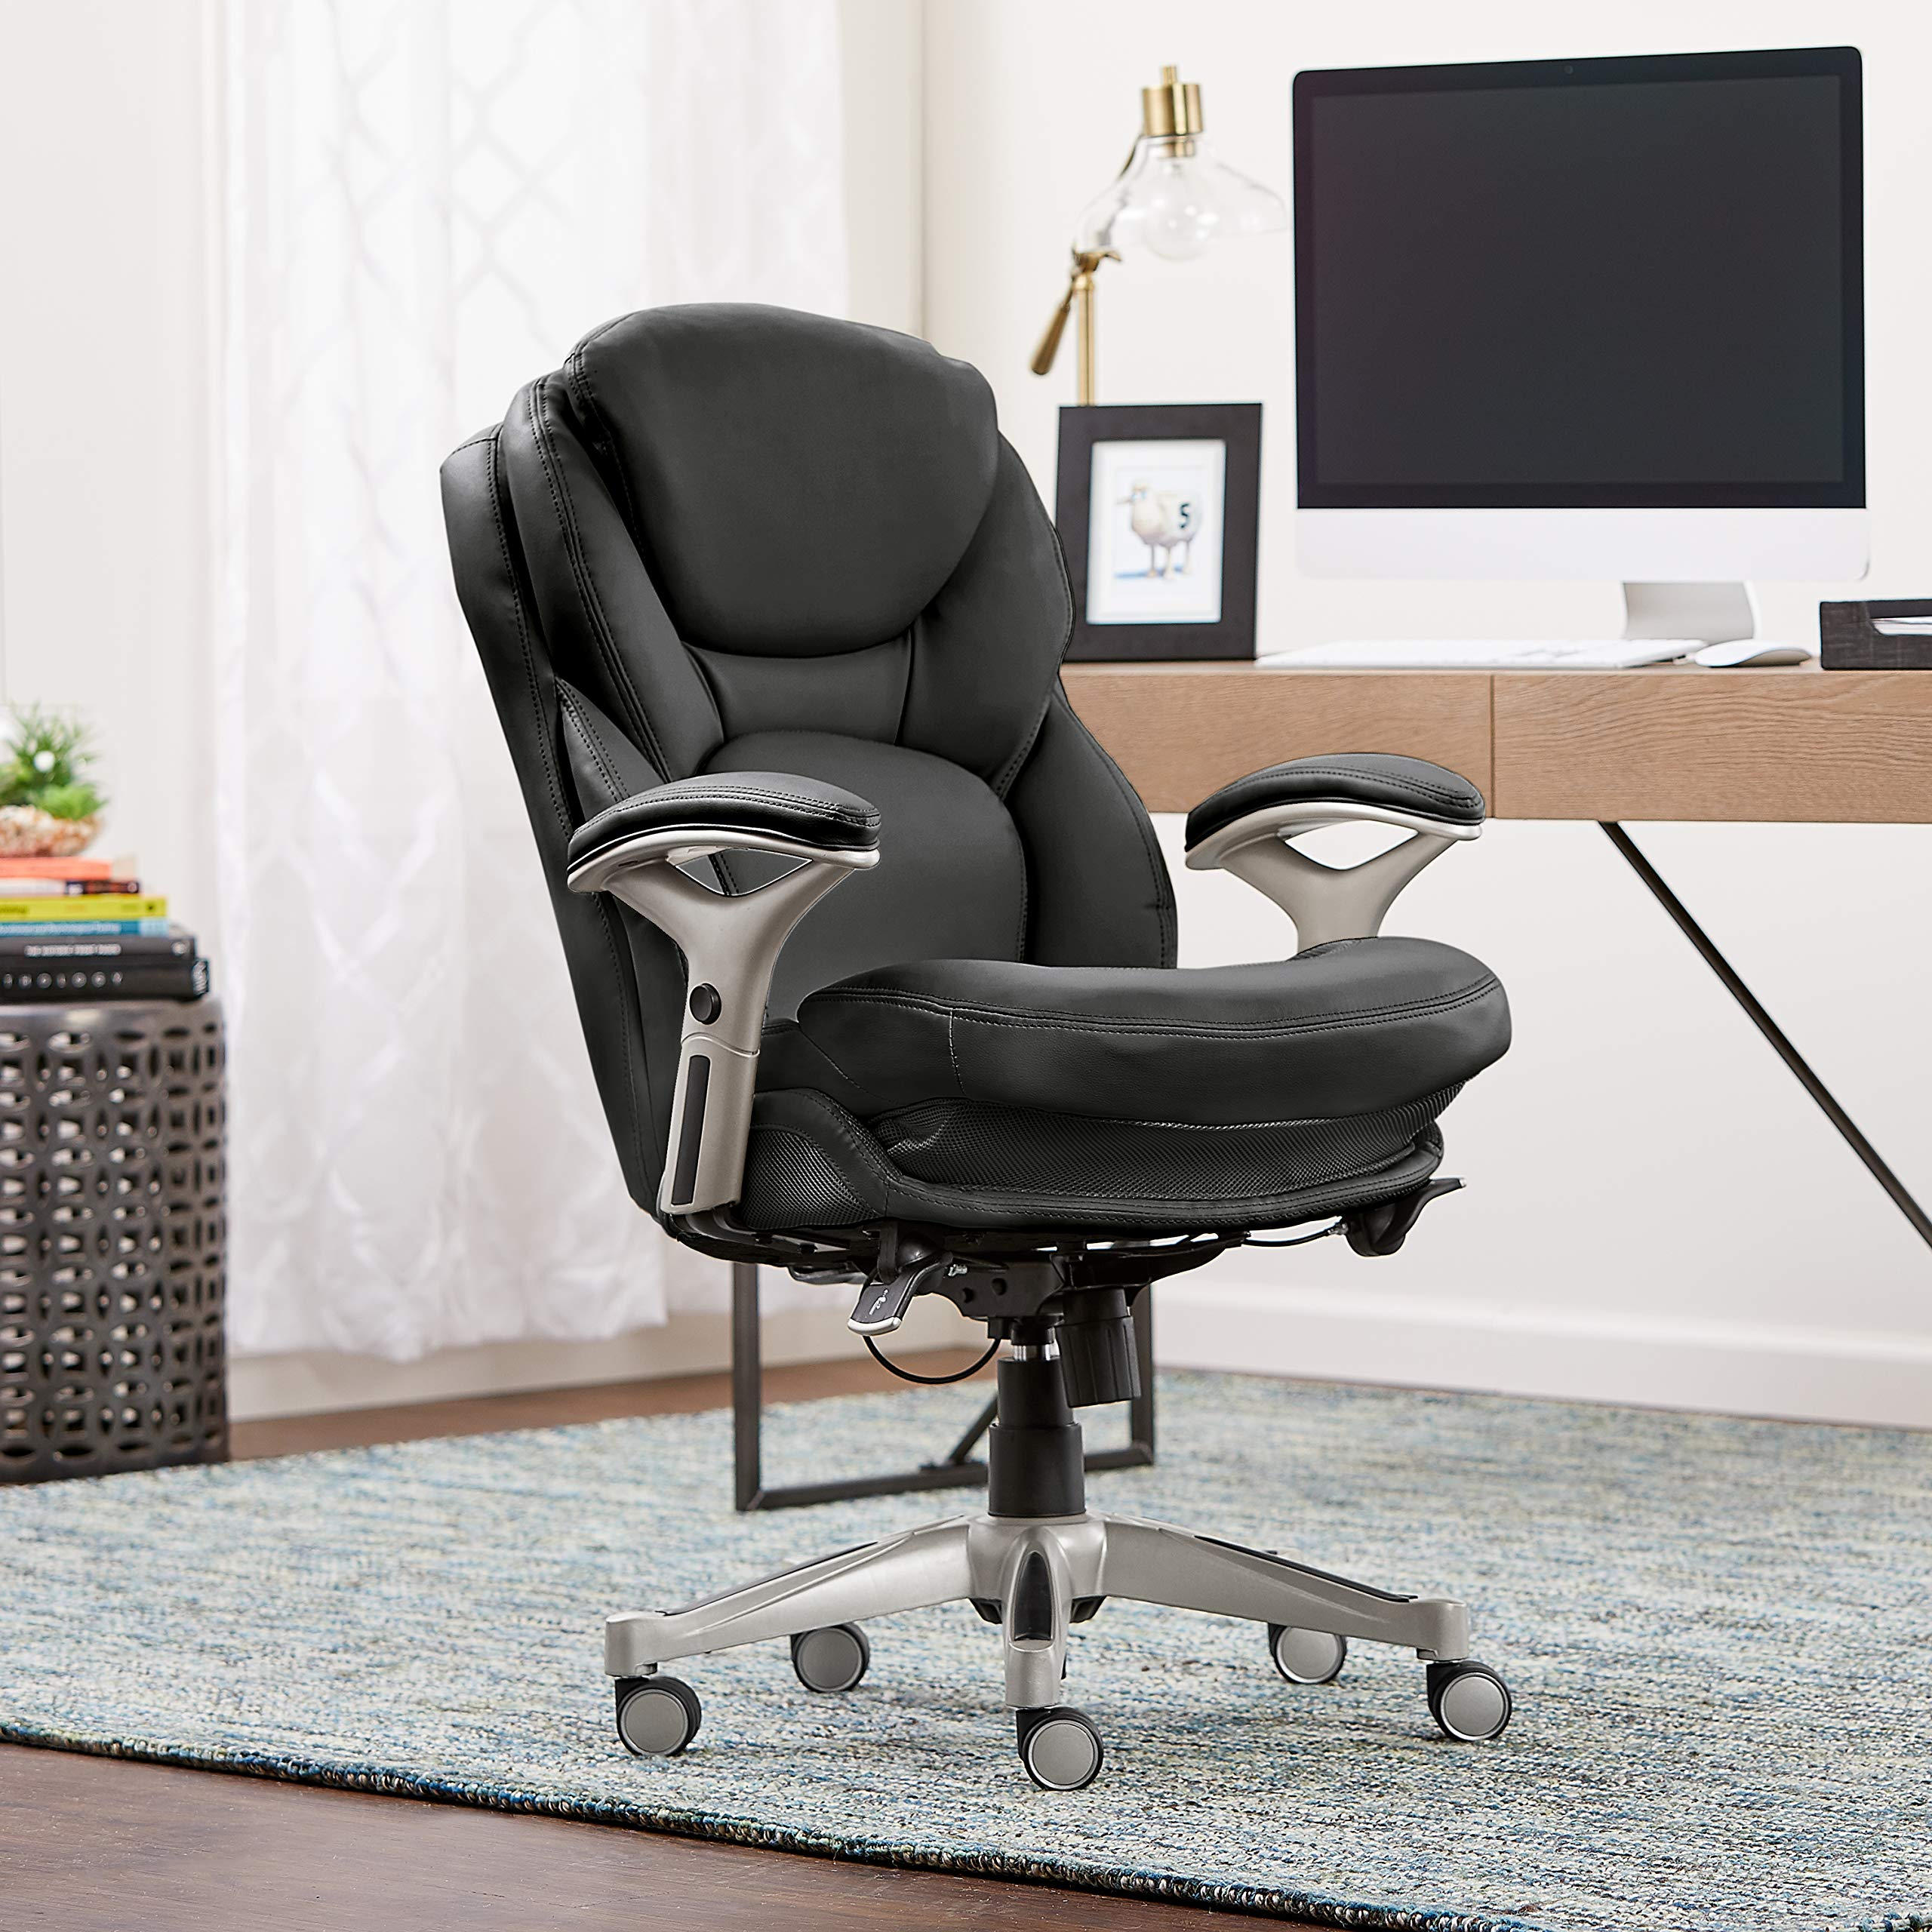 Serta Works Ergonomic Executive Office Chair with Back in Motion Technology, Black Bonded Leather by Serta